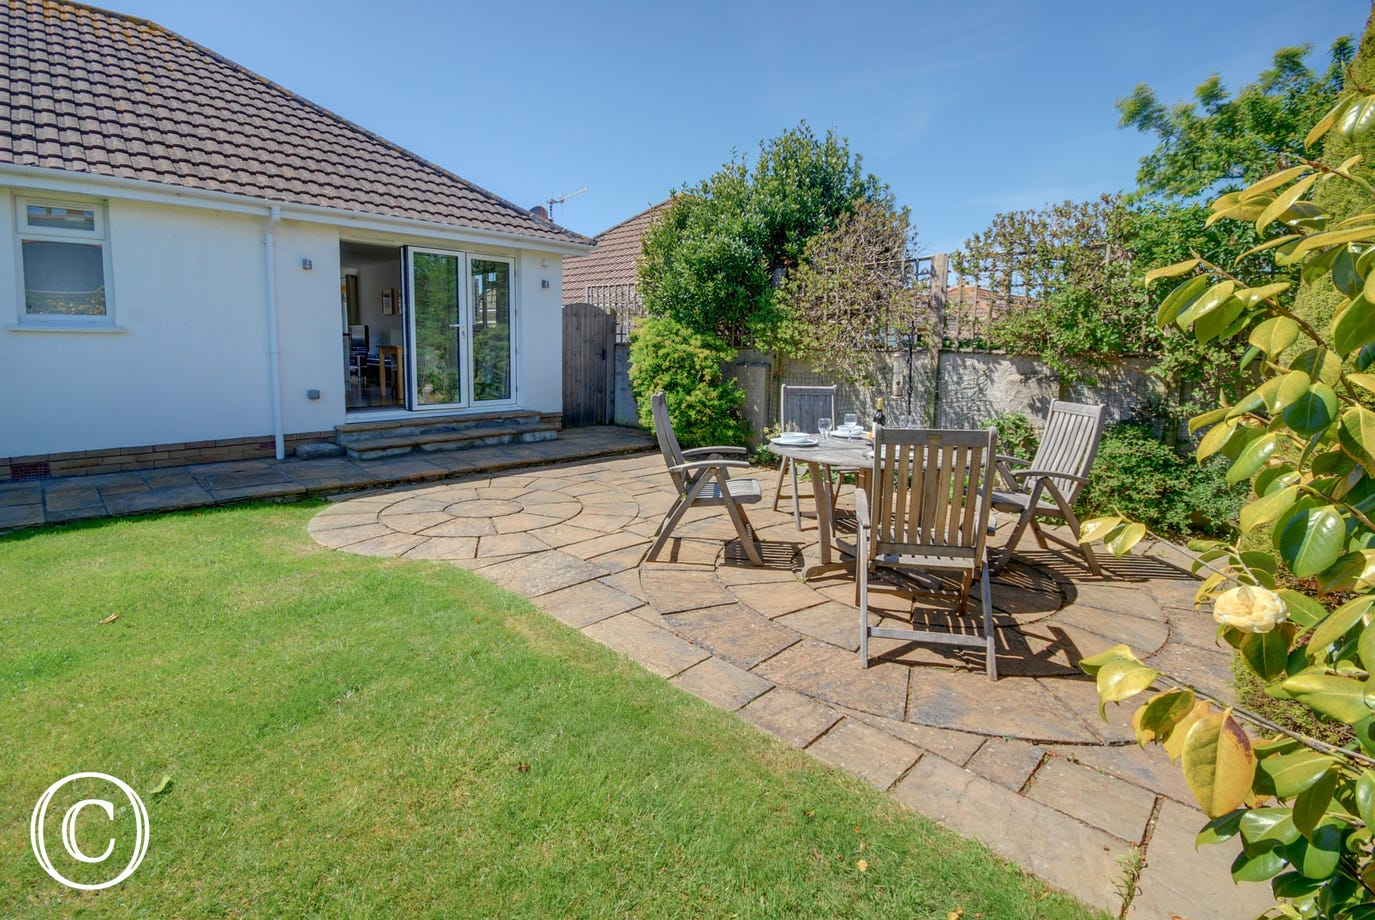 Lovely private garden with patio area for dining al fresco